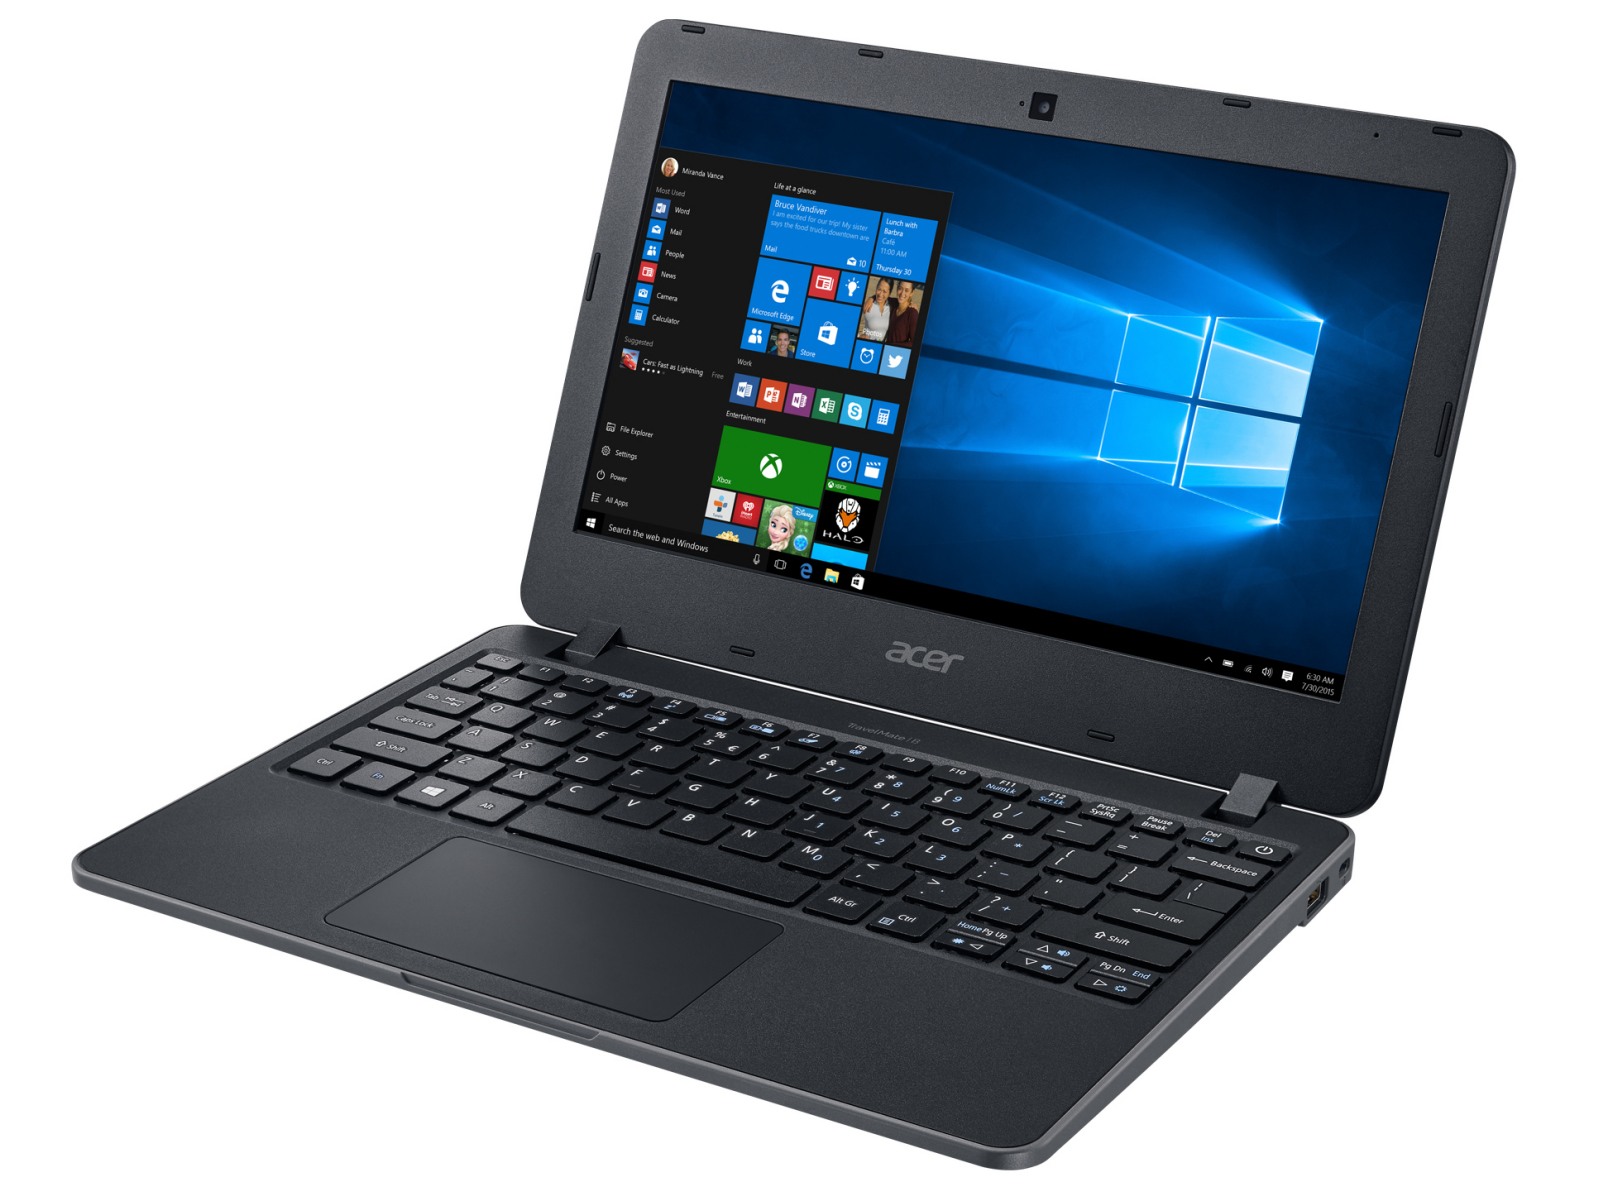 Acer TravelMate B117-M-P16Q Netbook Review - NotebookCheck.net Reviews